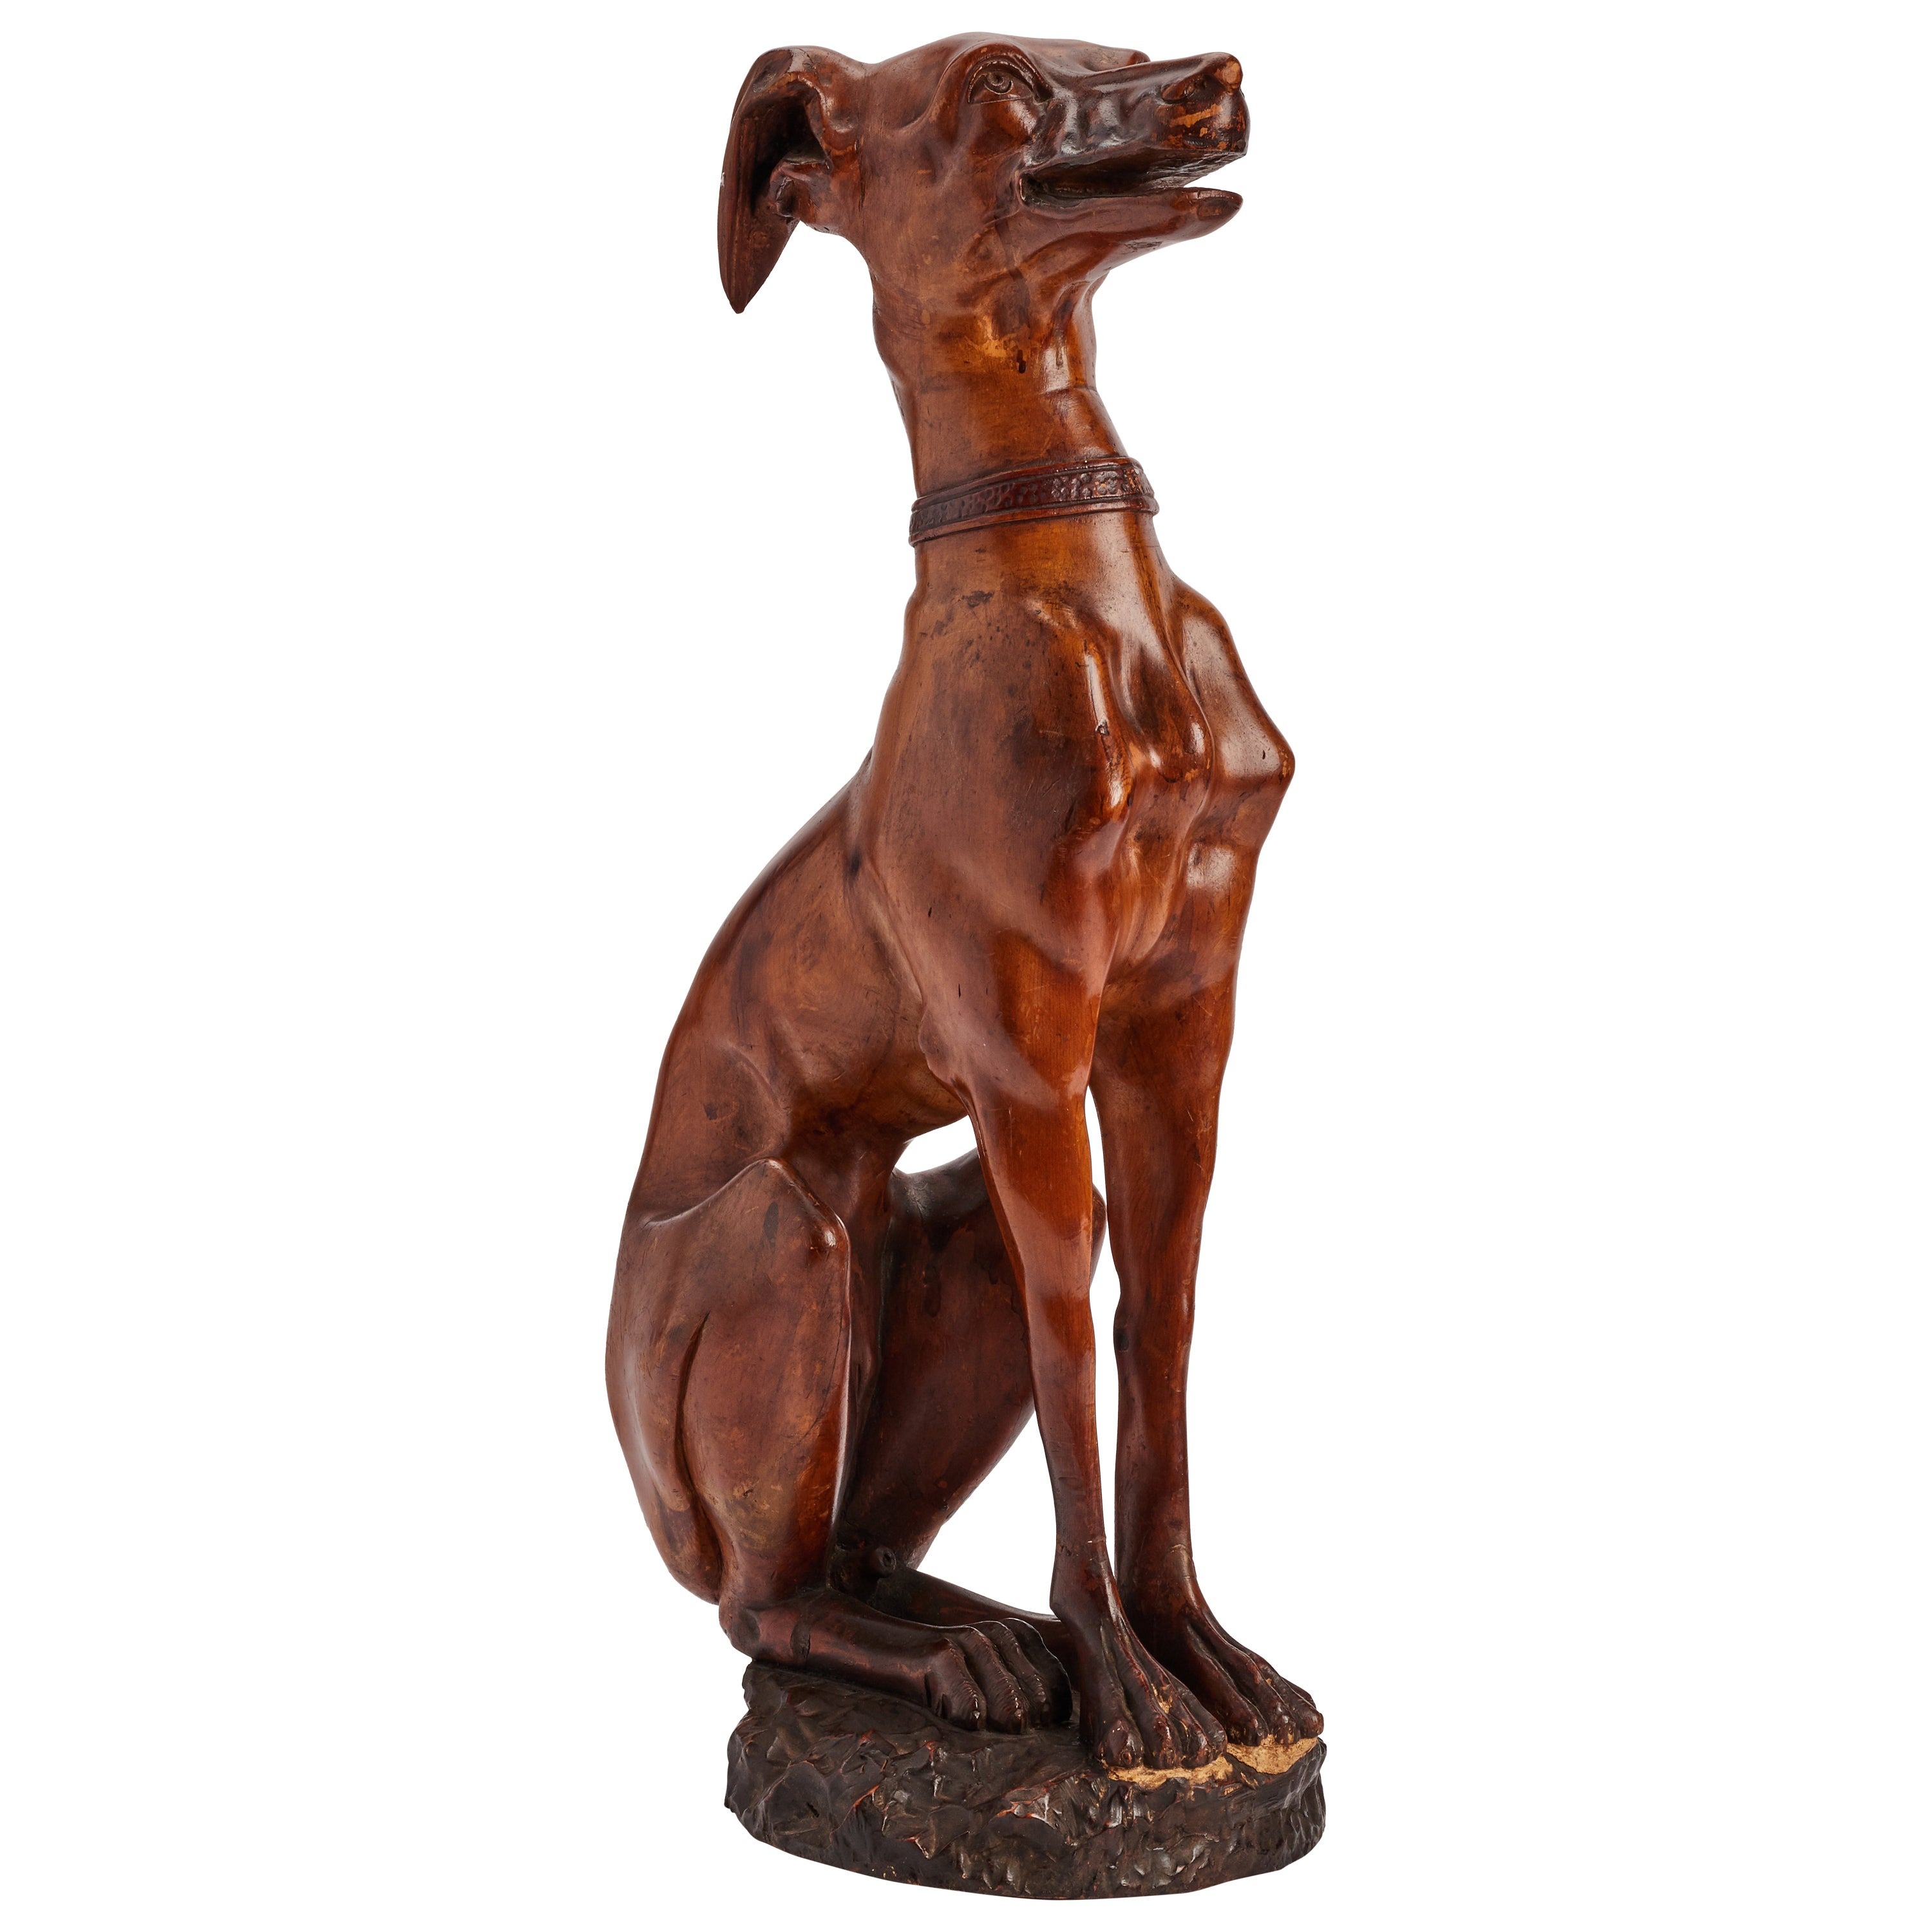 Wooden Sculpture Whippet Dog, Italy, 1830